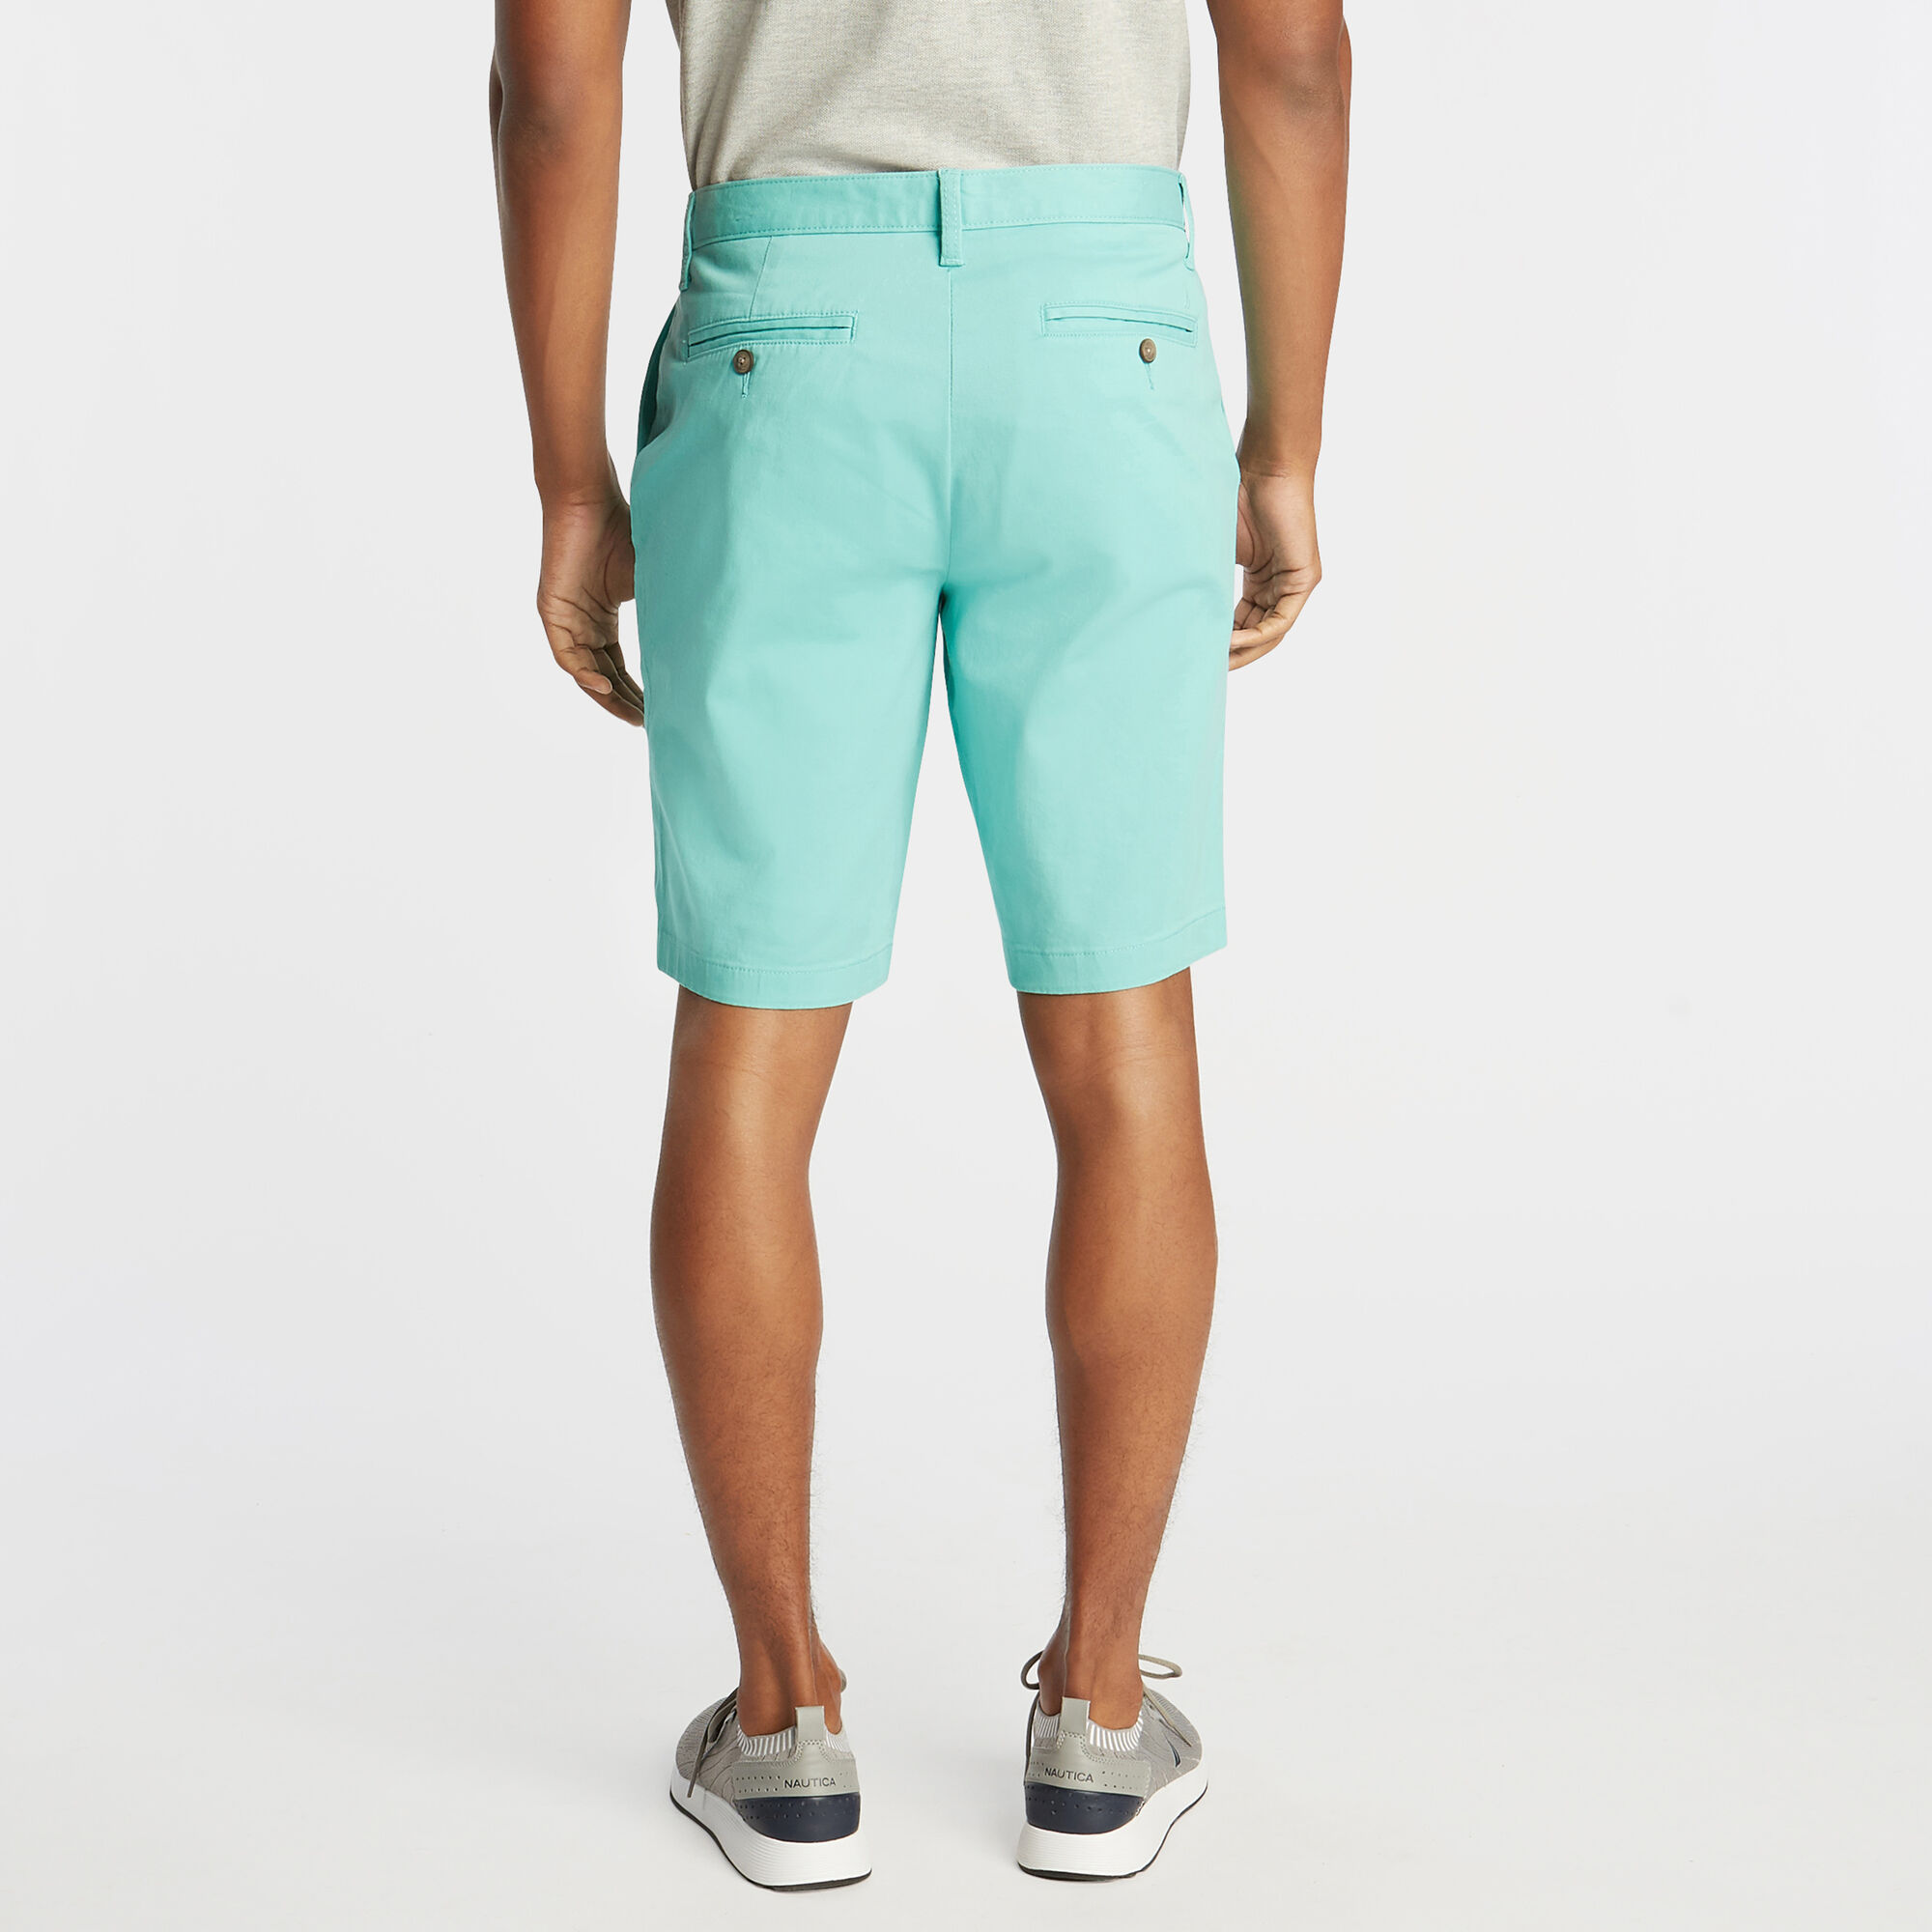 Nautica-Mens-10-034-Classic-Fit-Deck-Shorts-With-Stretch thumbnail 23